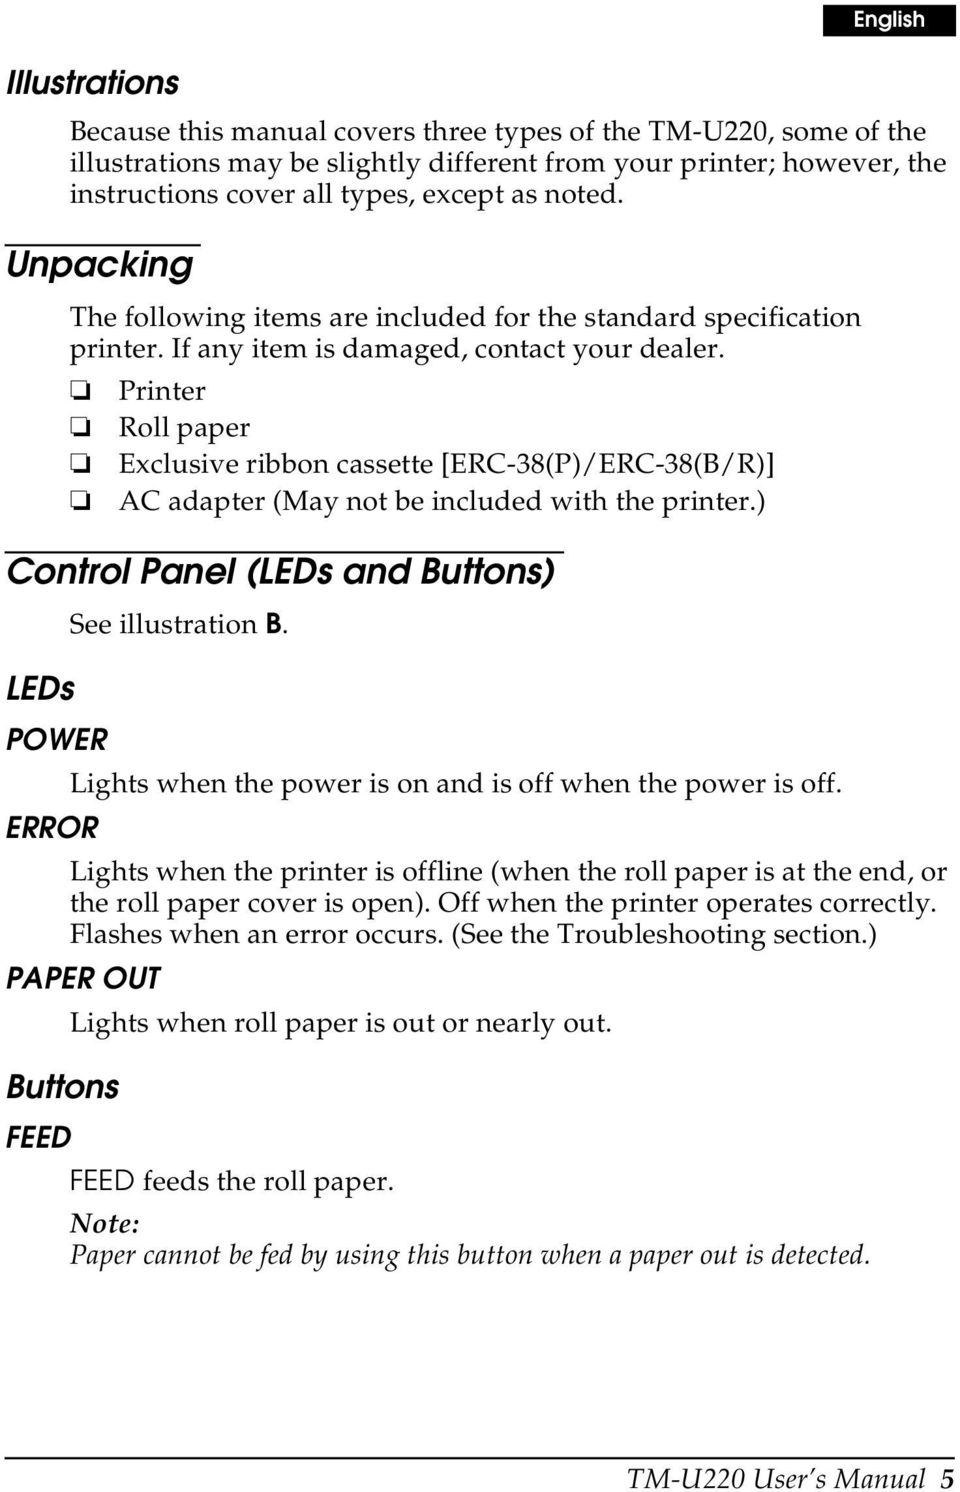 Printer Roll paper Exclusive ribbon cassette [ERC-38(P)/ERC-38(B/R)] AC adapter (May not be included with the printer.) Control Panel (LEDs and Buttons) LEDs POWER ERROR See illustration B.